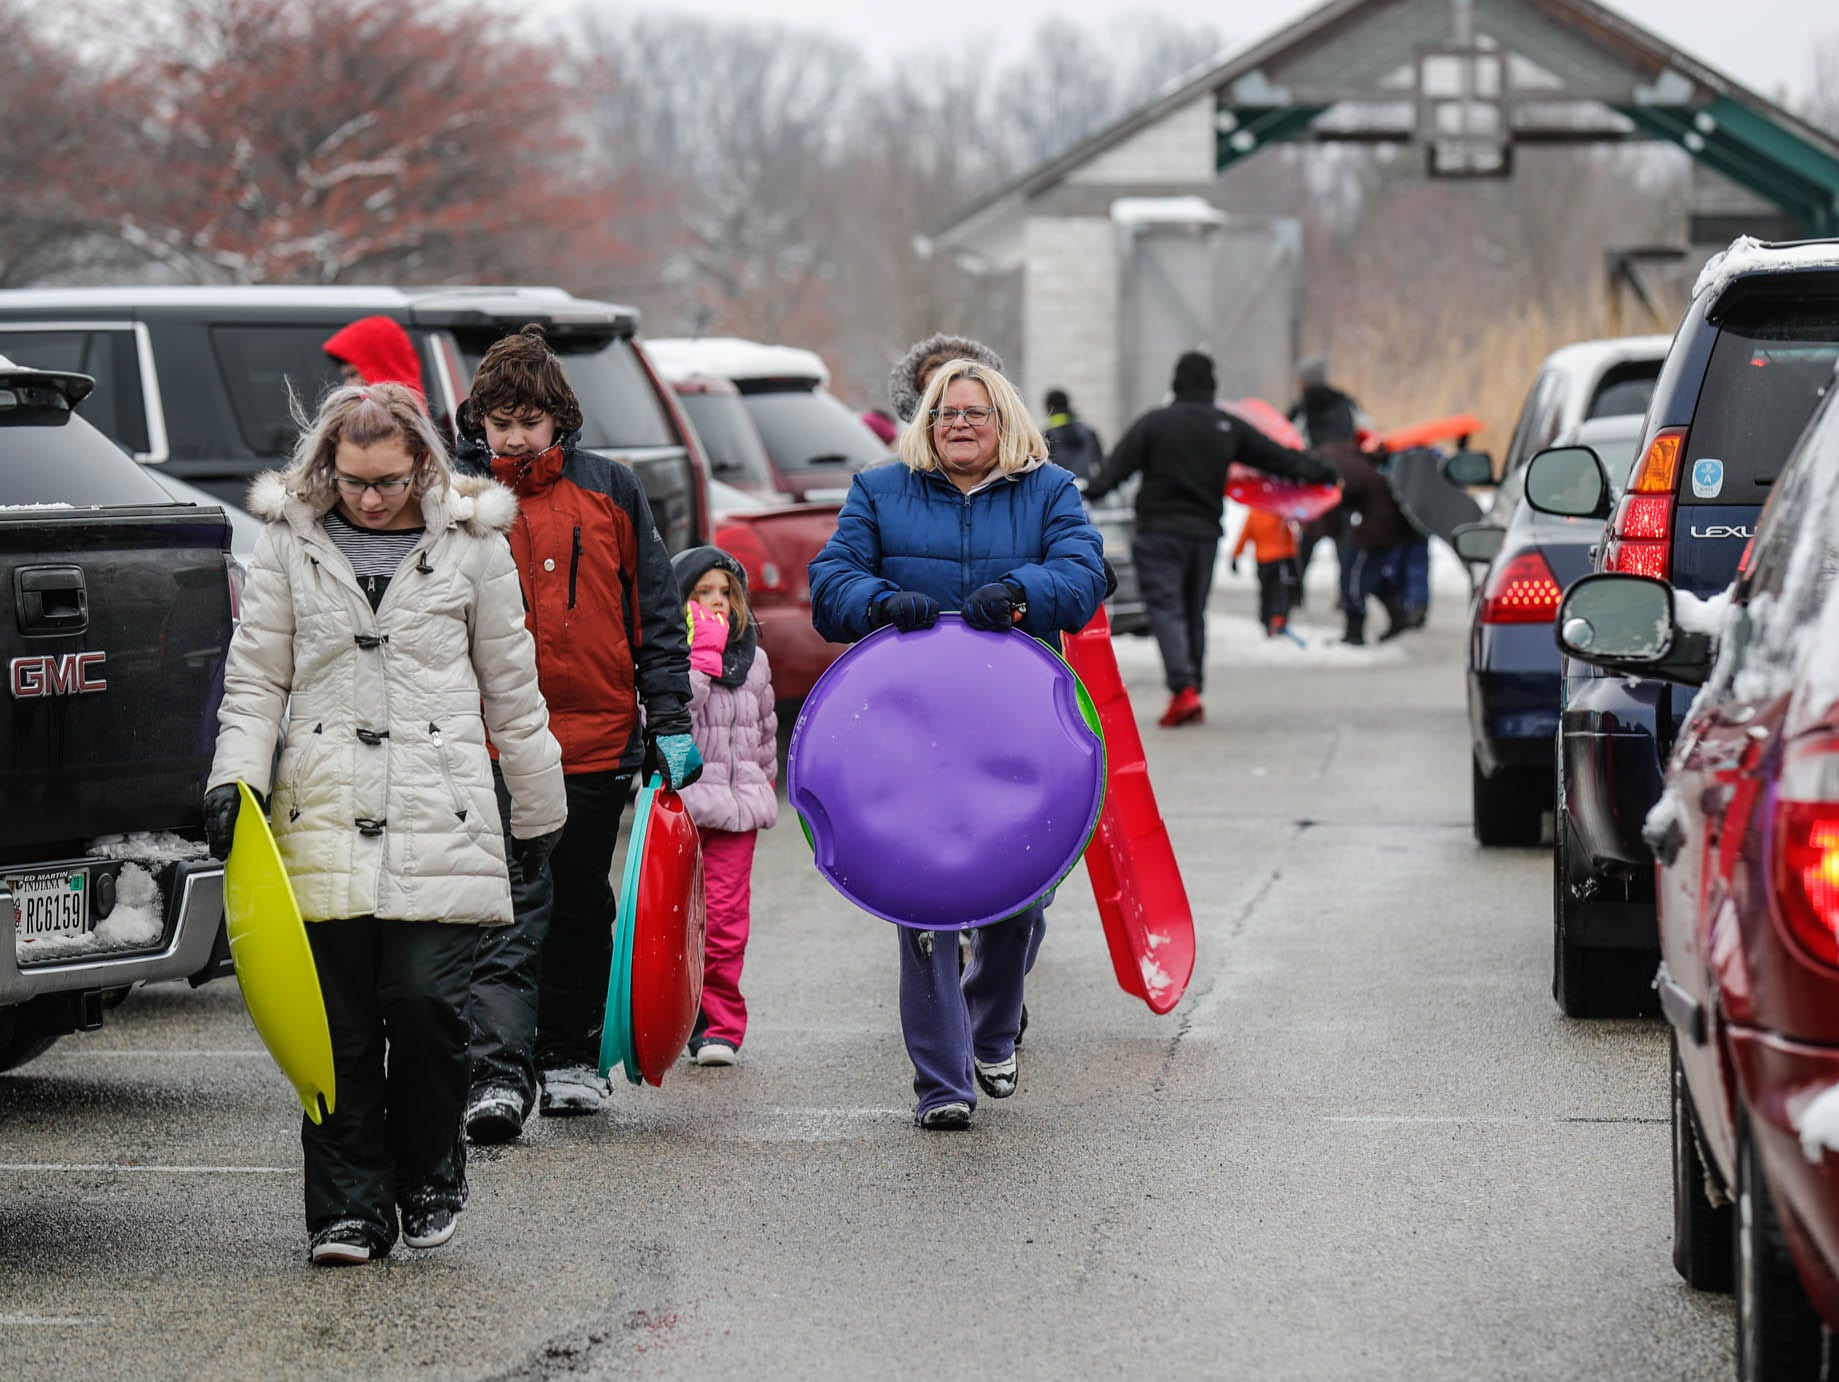 Visitors line up in cars to pick up and drop off near the sledding hill at West Park in Carmel Ind. on Sunday, Jan. 13, 2019.